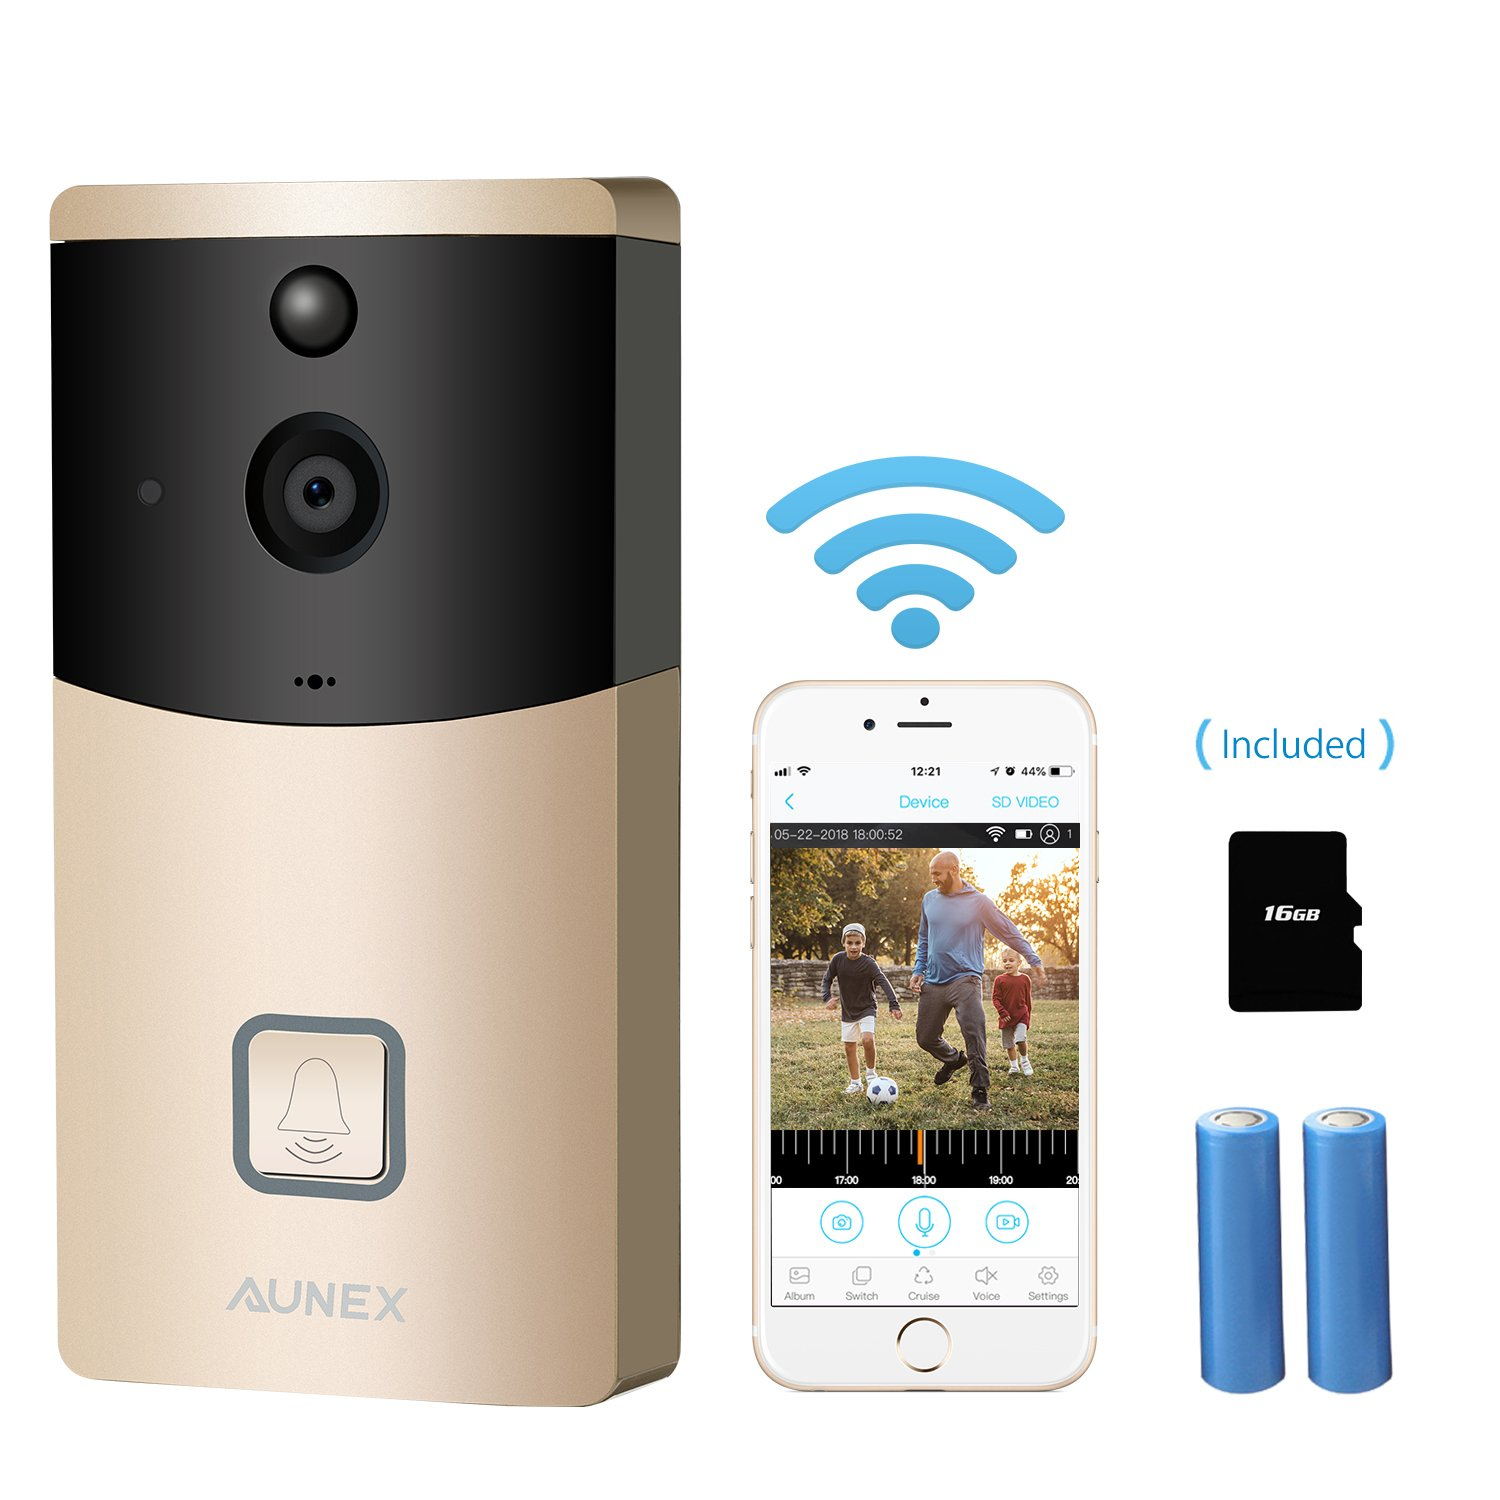 UPGRADED Video Doorbell,WIFI Wireless Doorbell Camera 720P HD Security Camera PIR Motion Detection Night Vision Real-Time Video Two-Way Audio Wide-angle for IOS and Android Built-in 16GB SD Card(Gold)